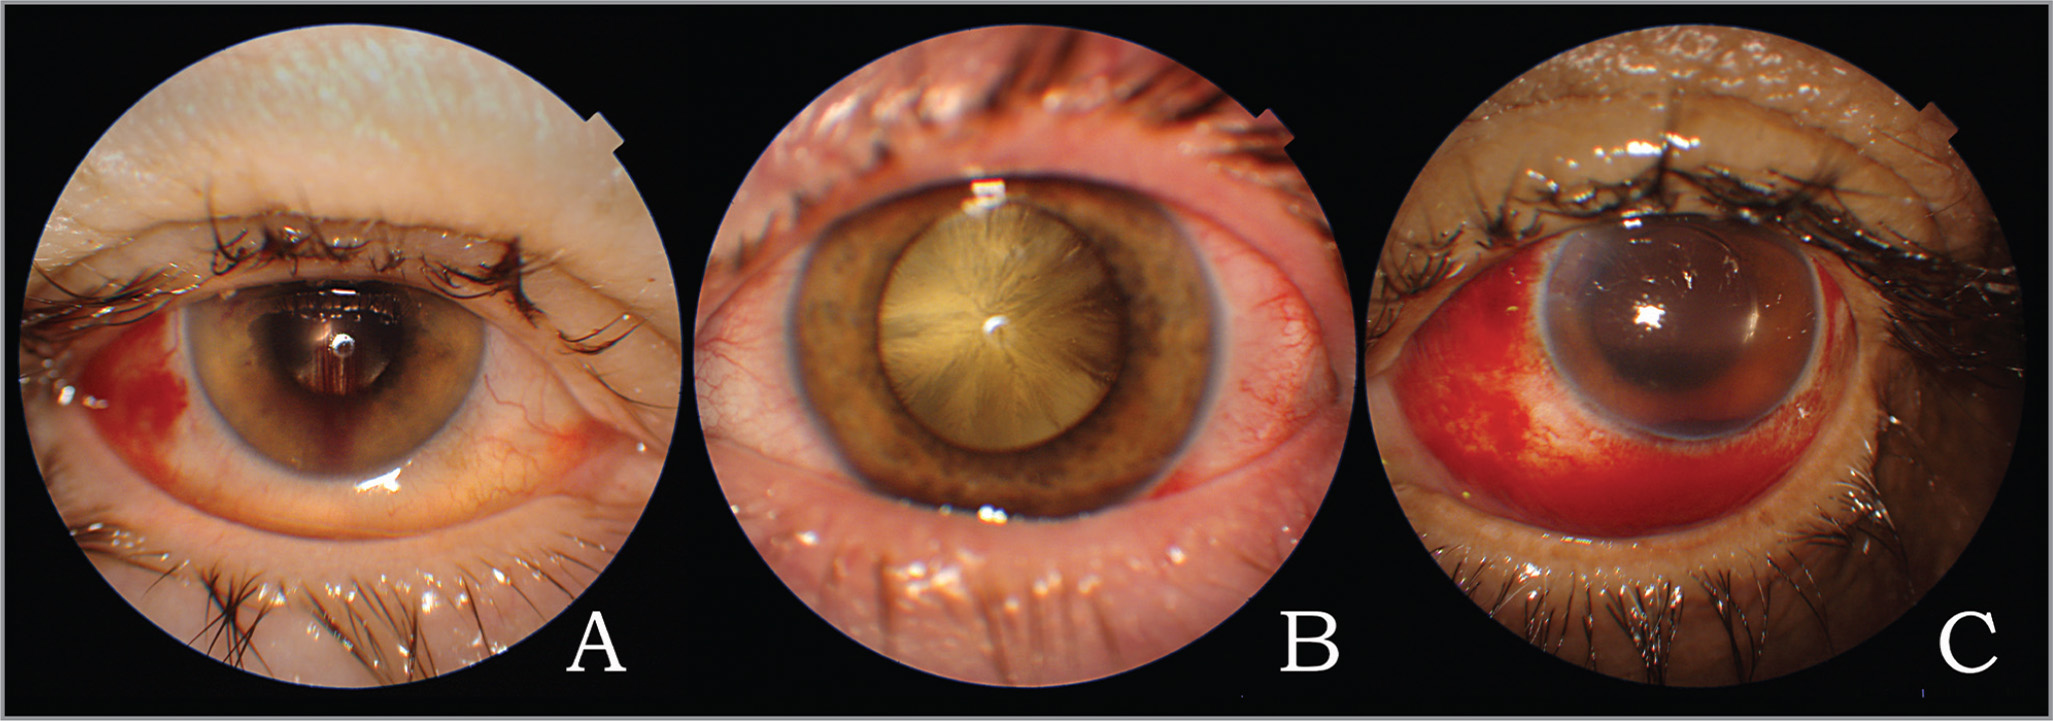 Anterior color photography of eyes with unsuccessful swept-source optical coherence tomography scans. (A) Low vitreous gas fill. (B) Dense cataract. (C) Hyphema.